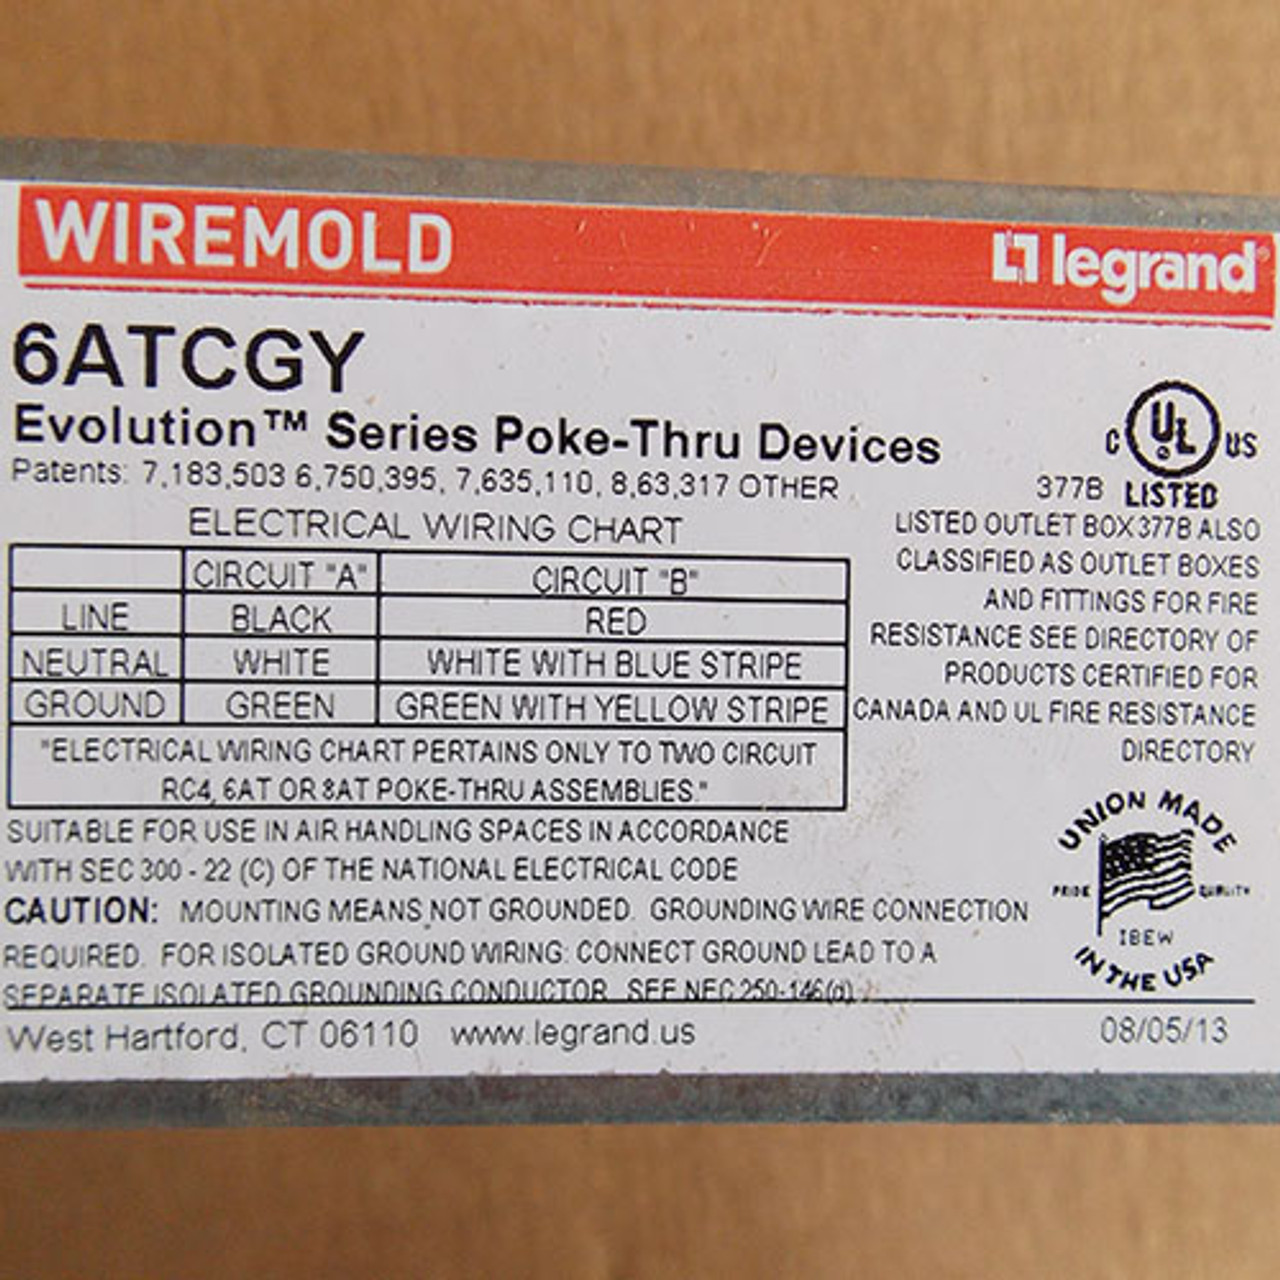 "Wiremold 6ATCGY Evolution Series Poke-Thru Device Assembly, 6"", Gray, Die Cast - New"